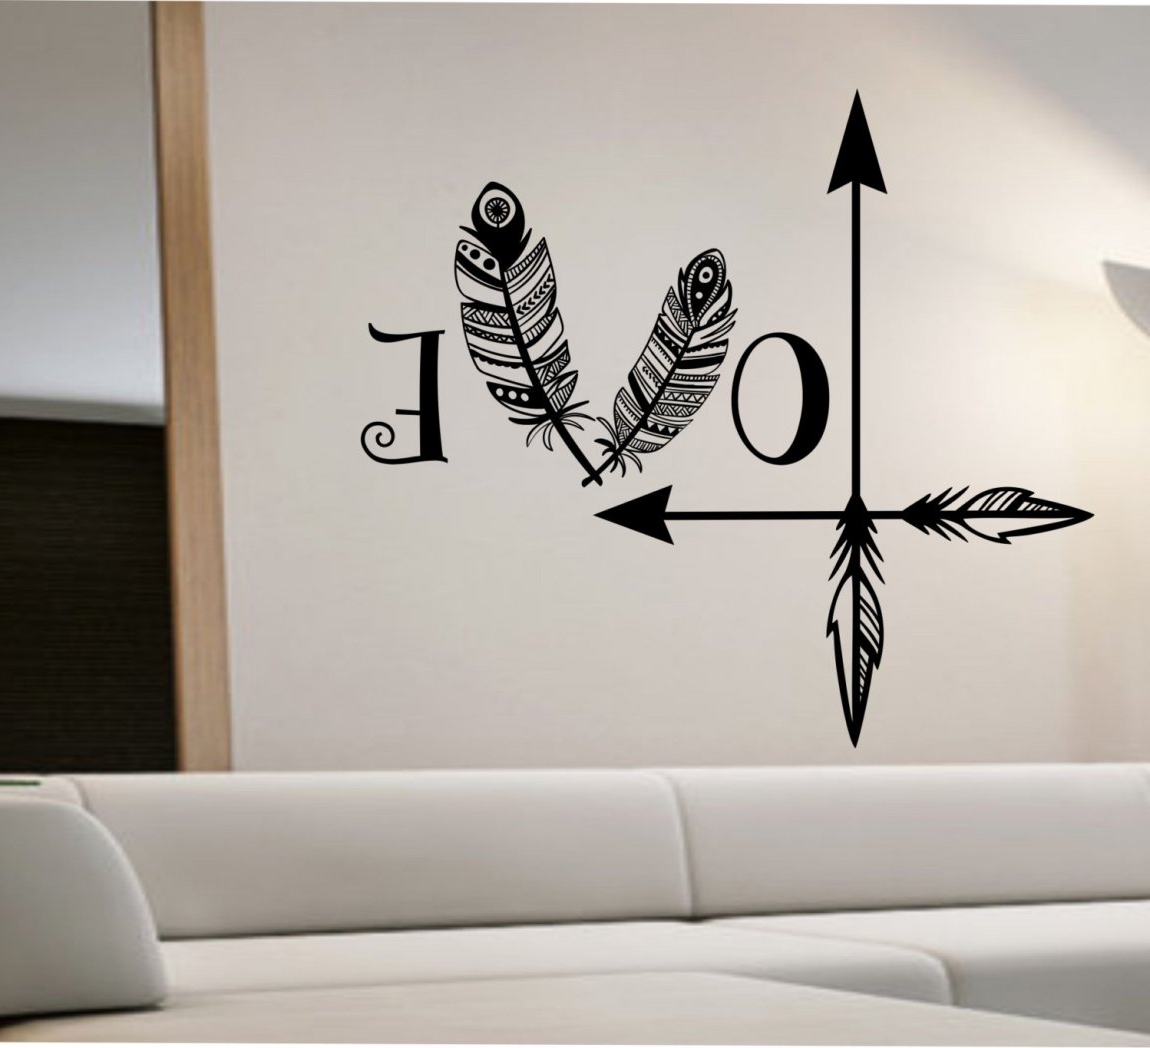 Fashionable 3D Wall Art Etsy Pertaining To 3D Wall Stickers Amazon Bedroom Decals Quotes Decal For Dog Etsy (View 9 of 15)